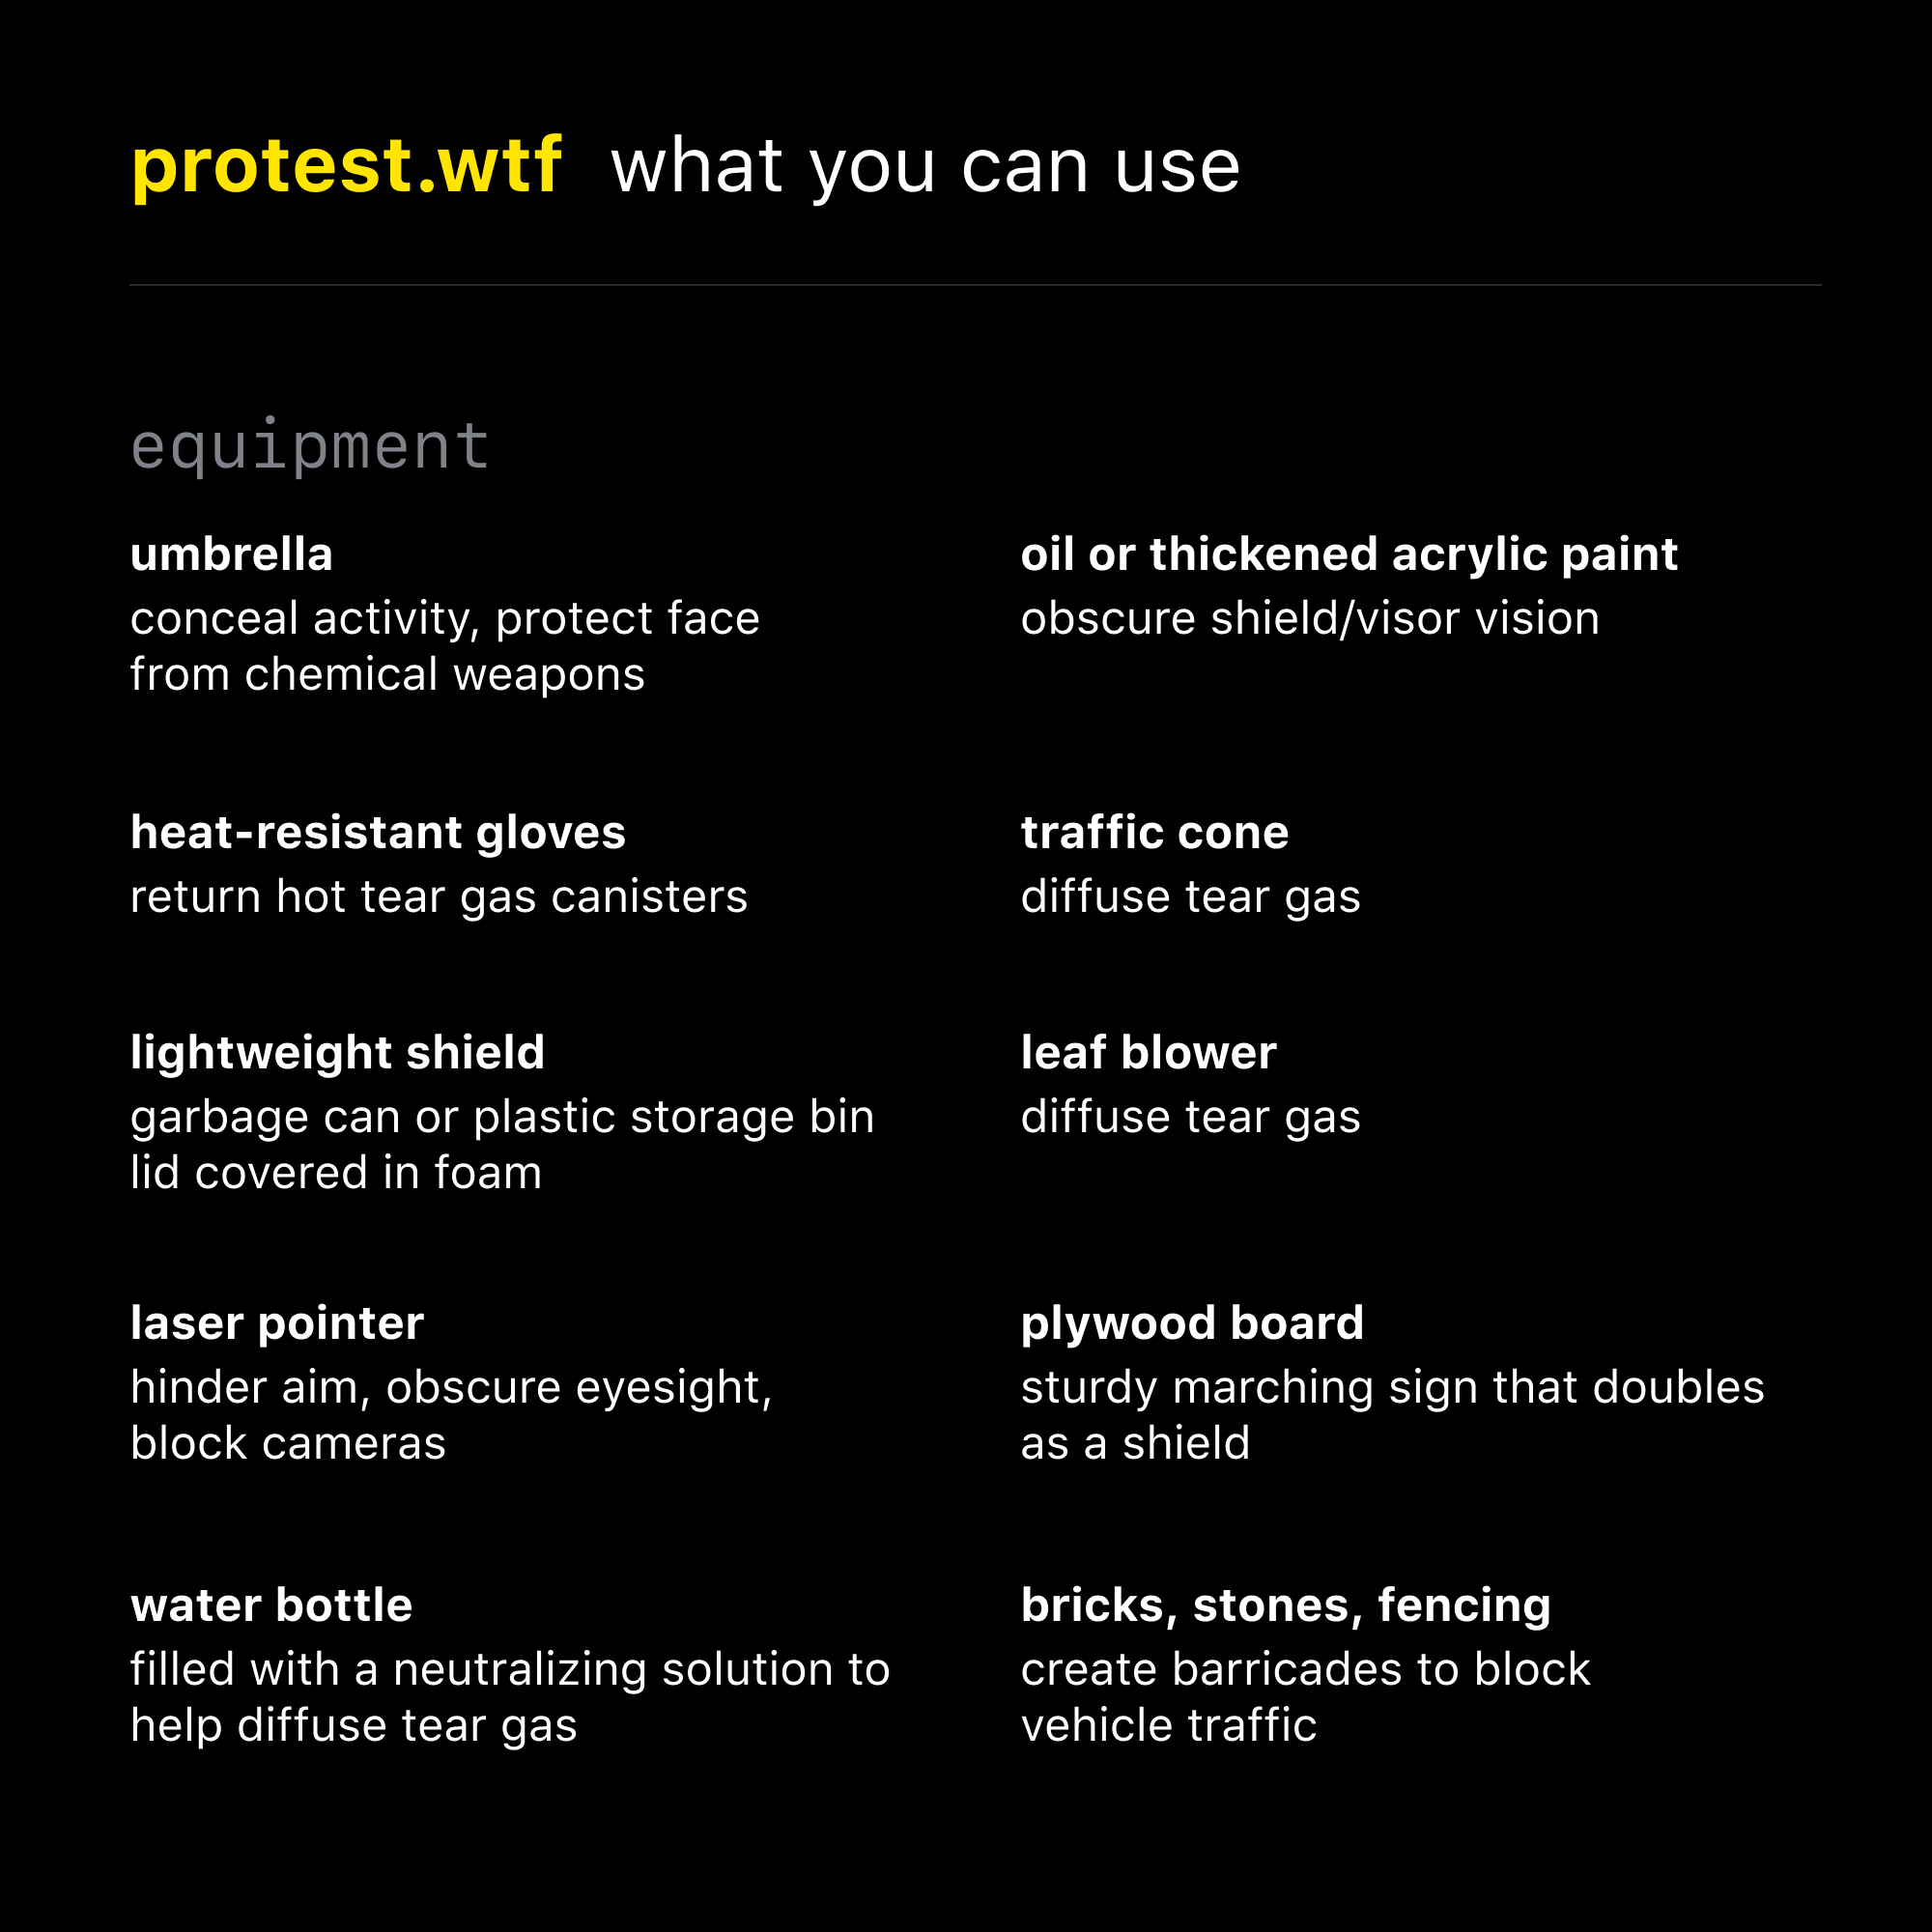 What you can use to protect yourself at a protest